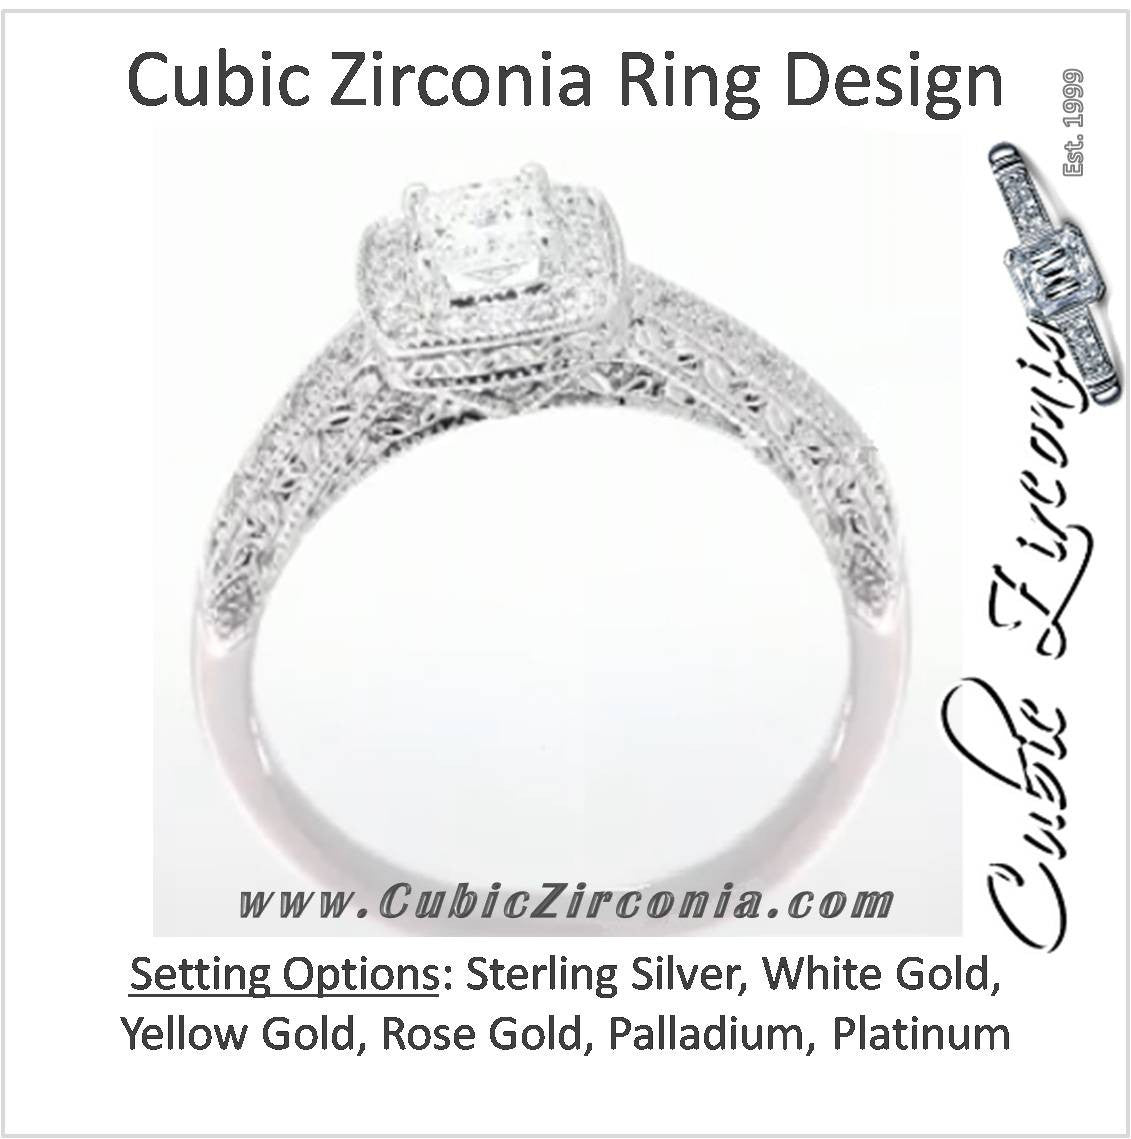 da73cae3e5f5c Cubic Zirconia Engagement Ring- The ________ Naming Rights 1575 (0.82 TCW  Cushion Cut Halo with Antique Style Engraving)